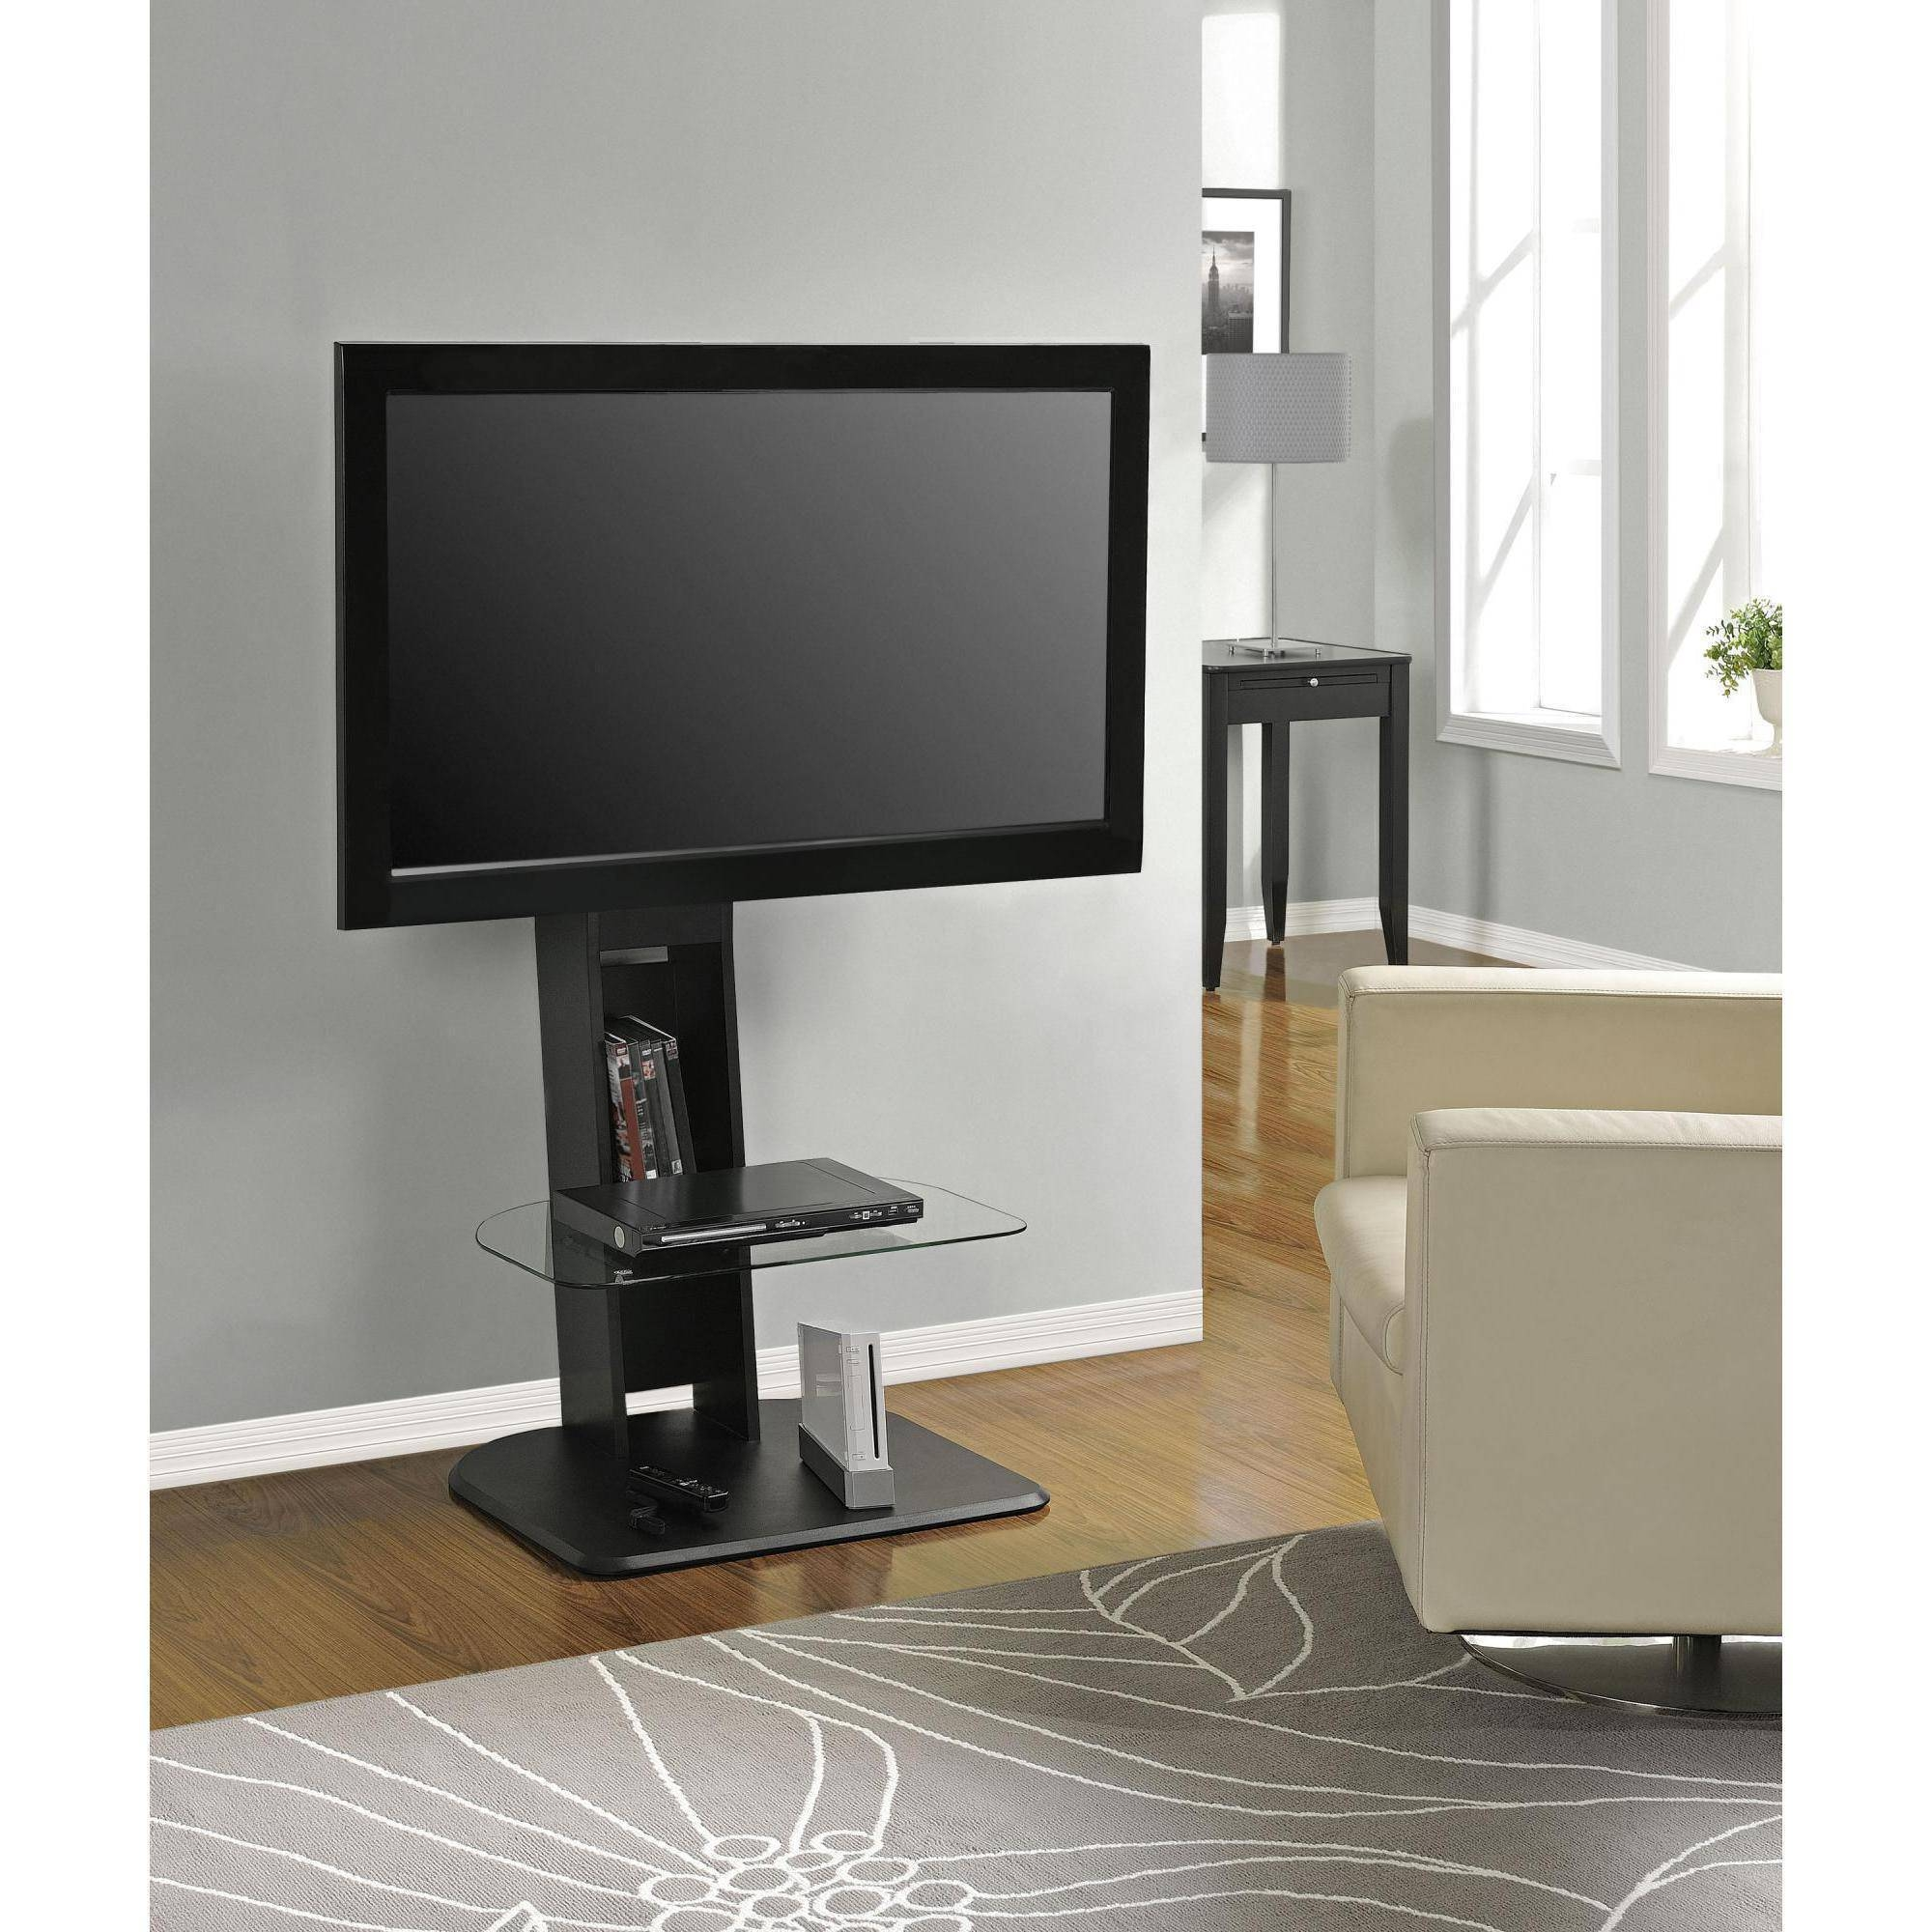 "Ameriwood Home Galaxy Tv Stand With Mount For Tvs Up To 50"", Black inside Tv Stands For Tube Tvs (Image 3 of 15)"